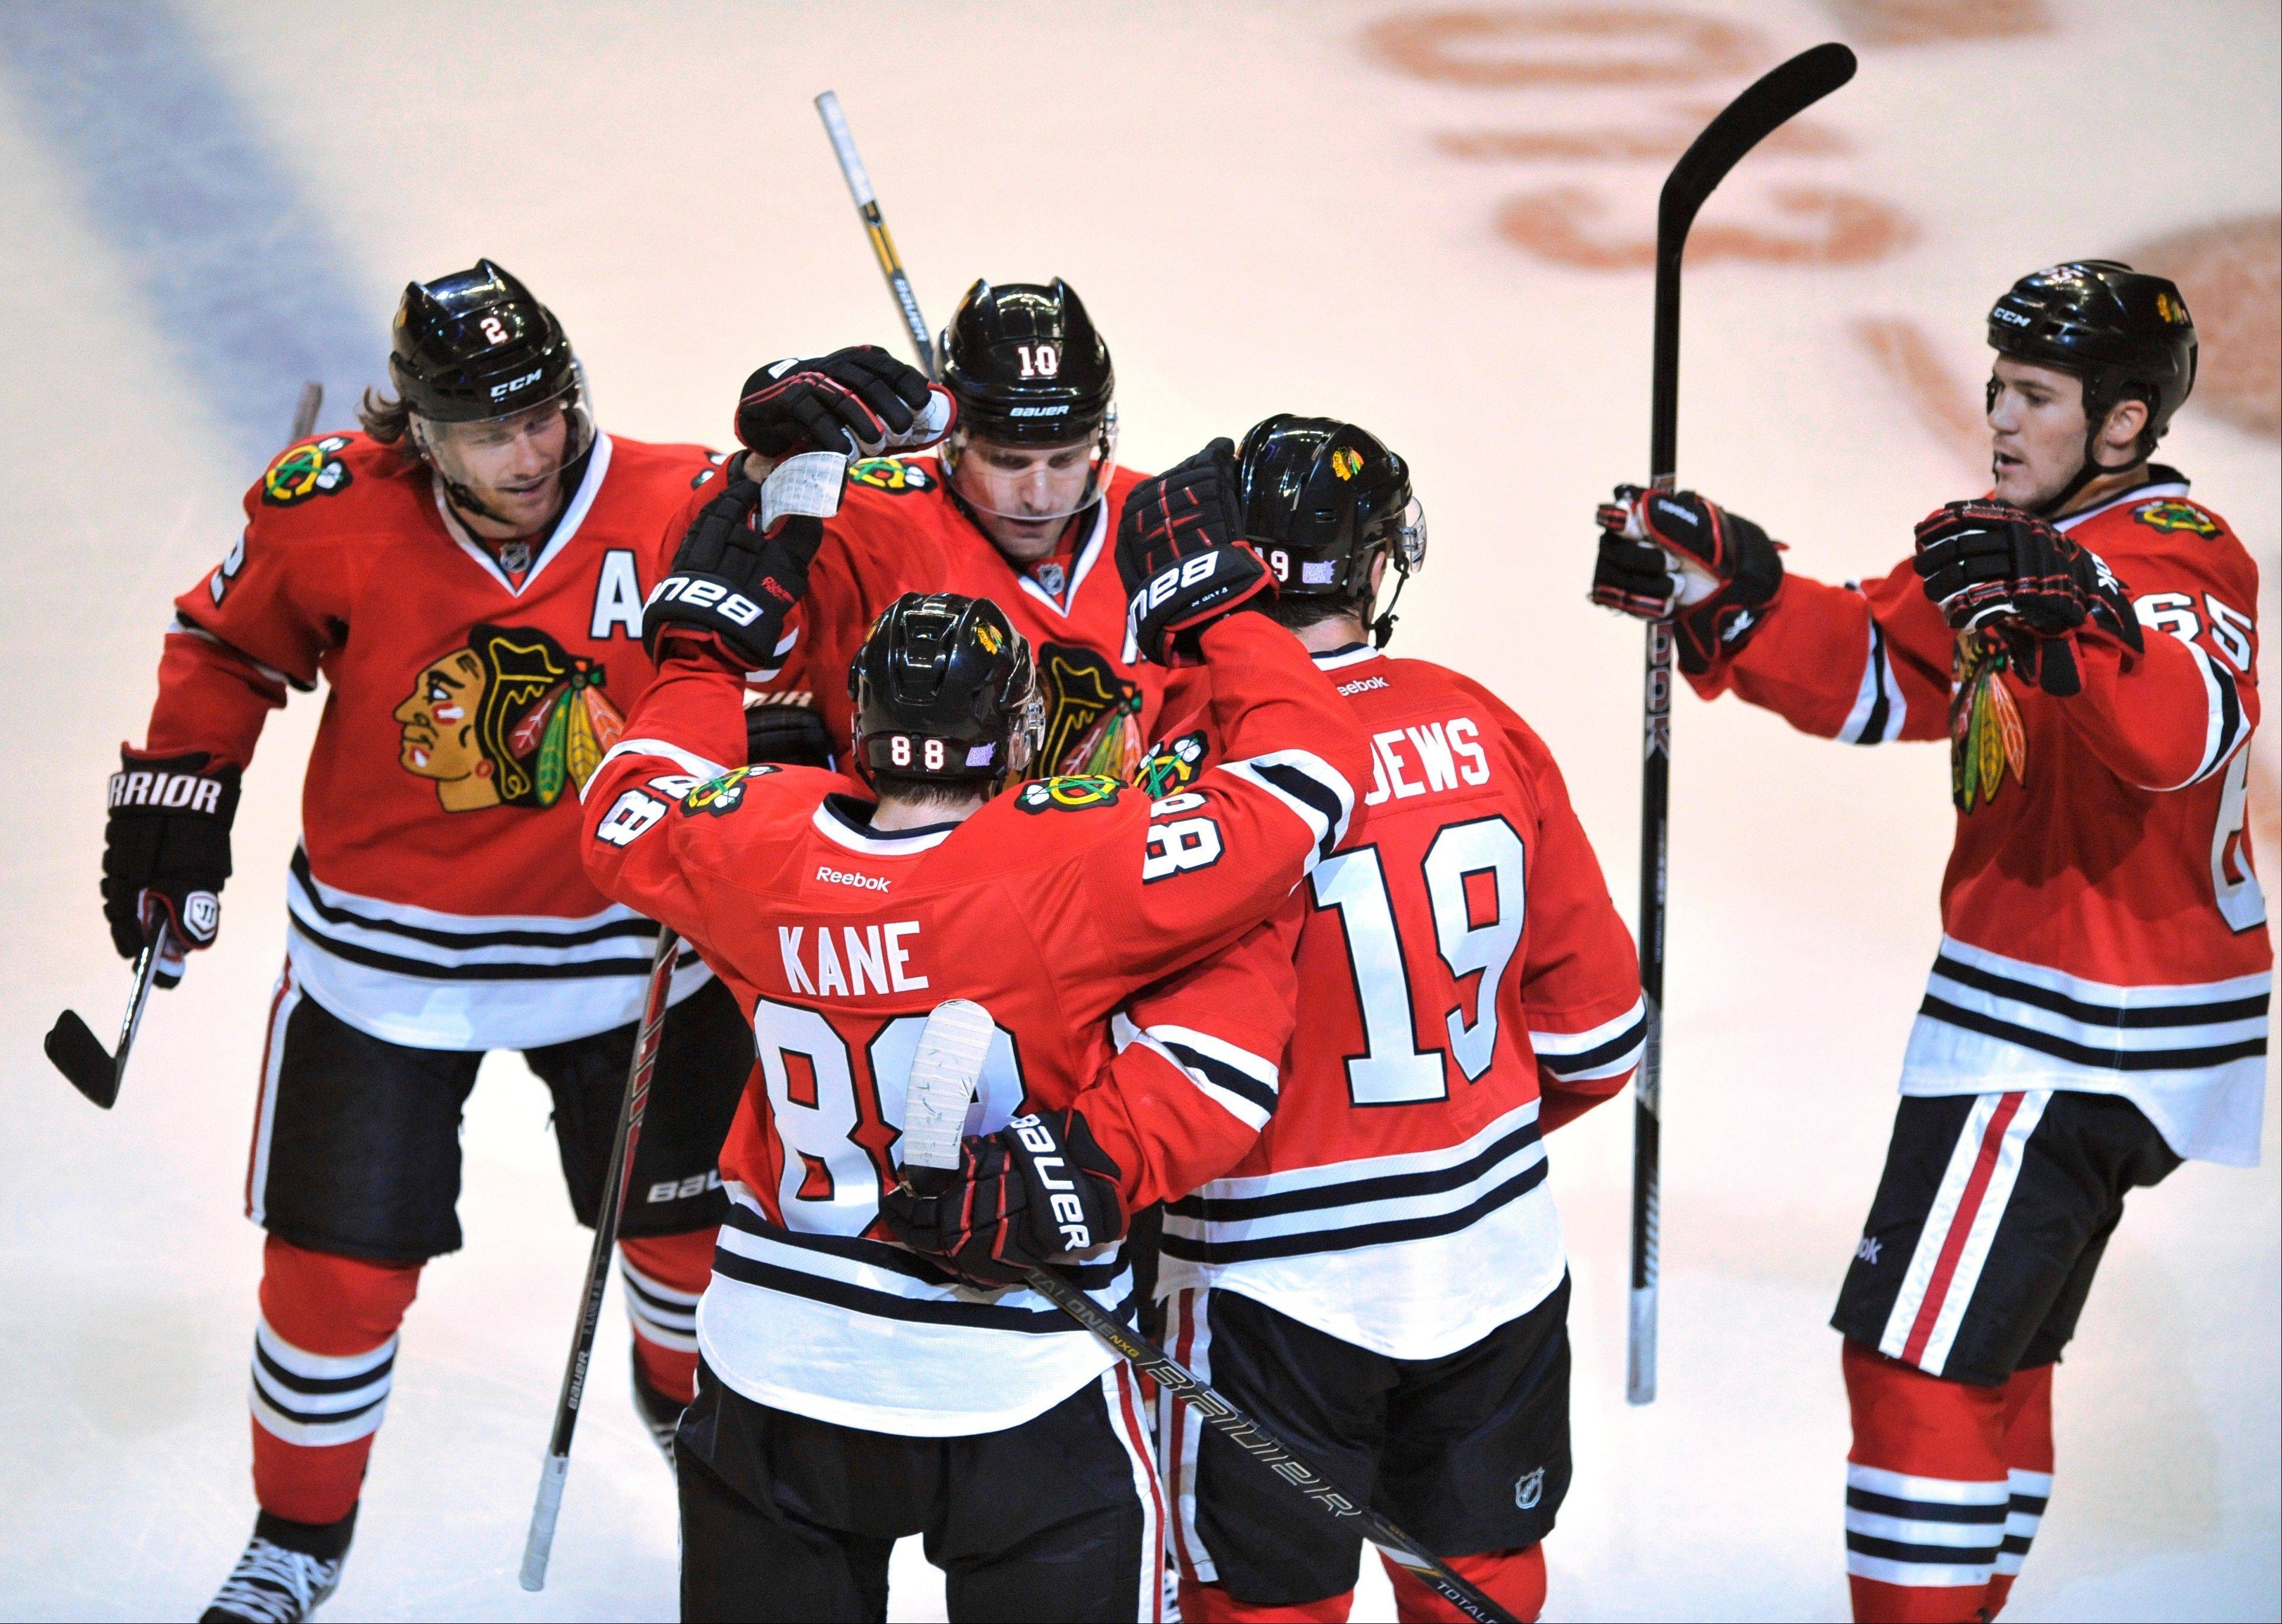 The Blackhawks' Patrick Kane (88), celebrates his goal with teammates Jonathan Toews (19), Andrew Shaw (65), Patrick Sharp (10), and Duncan Keith (2) during the second period Saturday against the Sabres at the United Center.